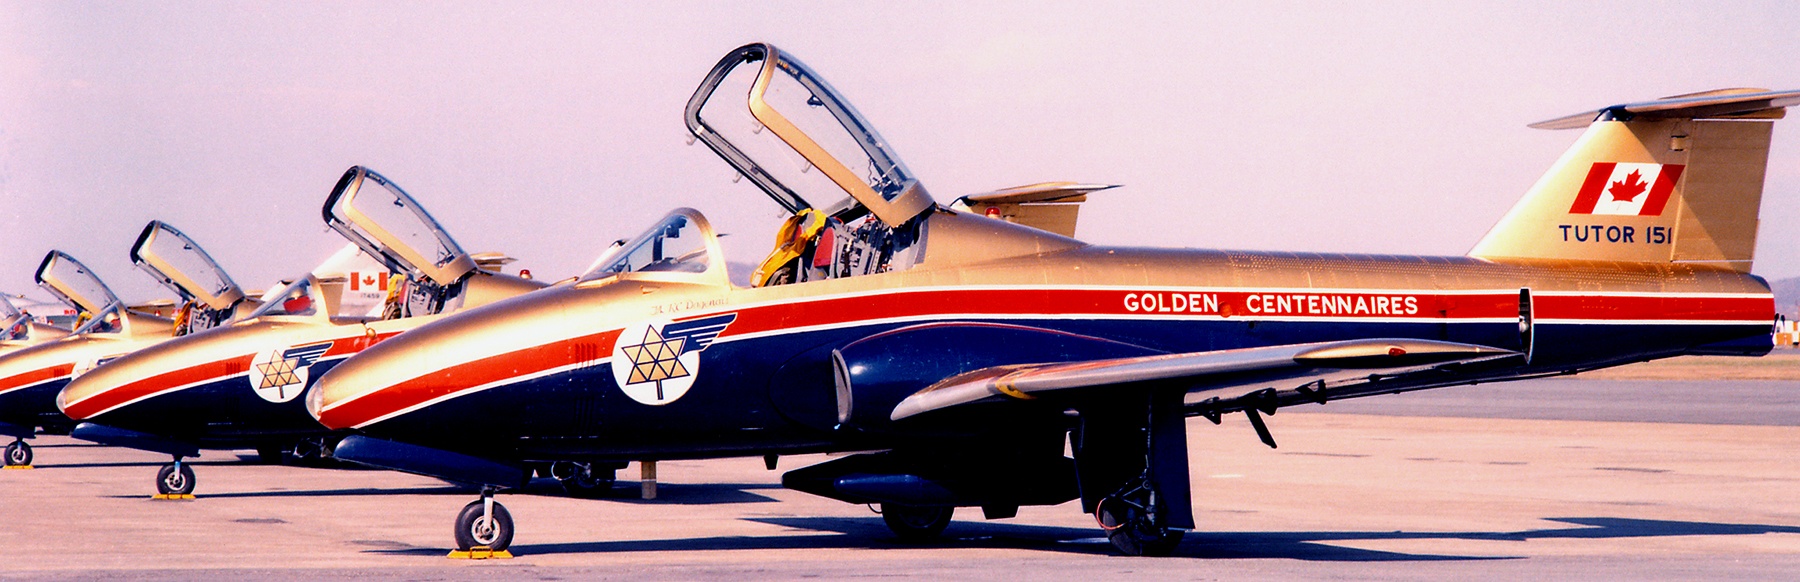 Les CT-114 Tutor des Paladins arborent une palette de couleurs conçue par le lieutenant d'aviation Geoff Bennet à l'époque où il travaillait au quartier général du Commandement de l'instruction à Winnipeg, au Manitoba. PHOTO : Offerte par le lieutenant-colonel (retraité) Dan Dempsey